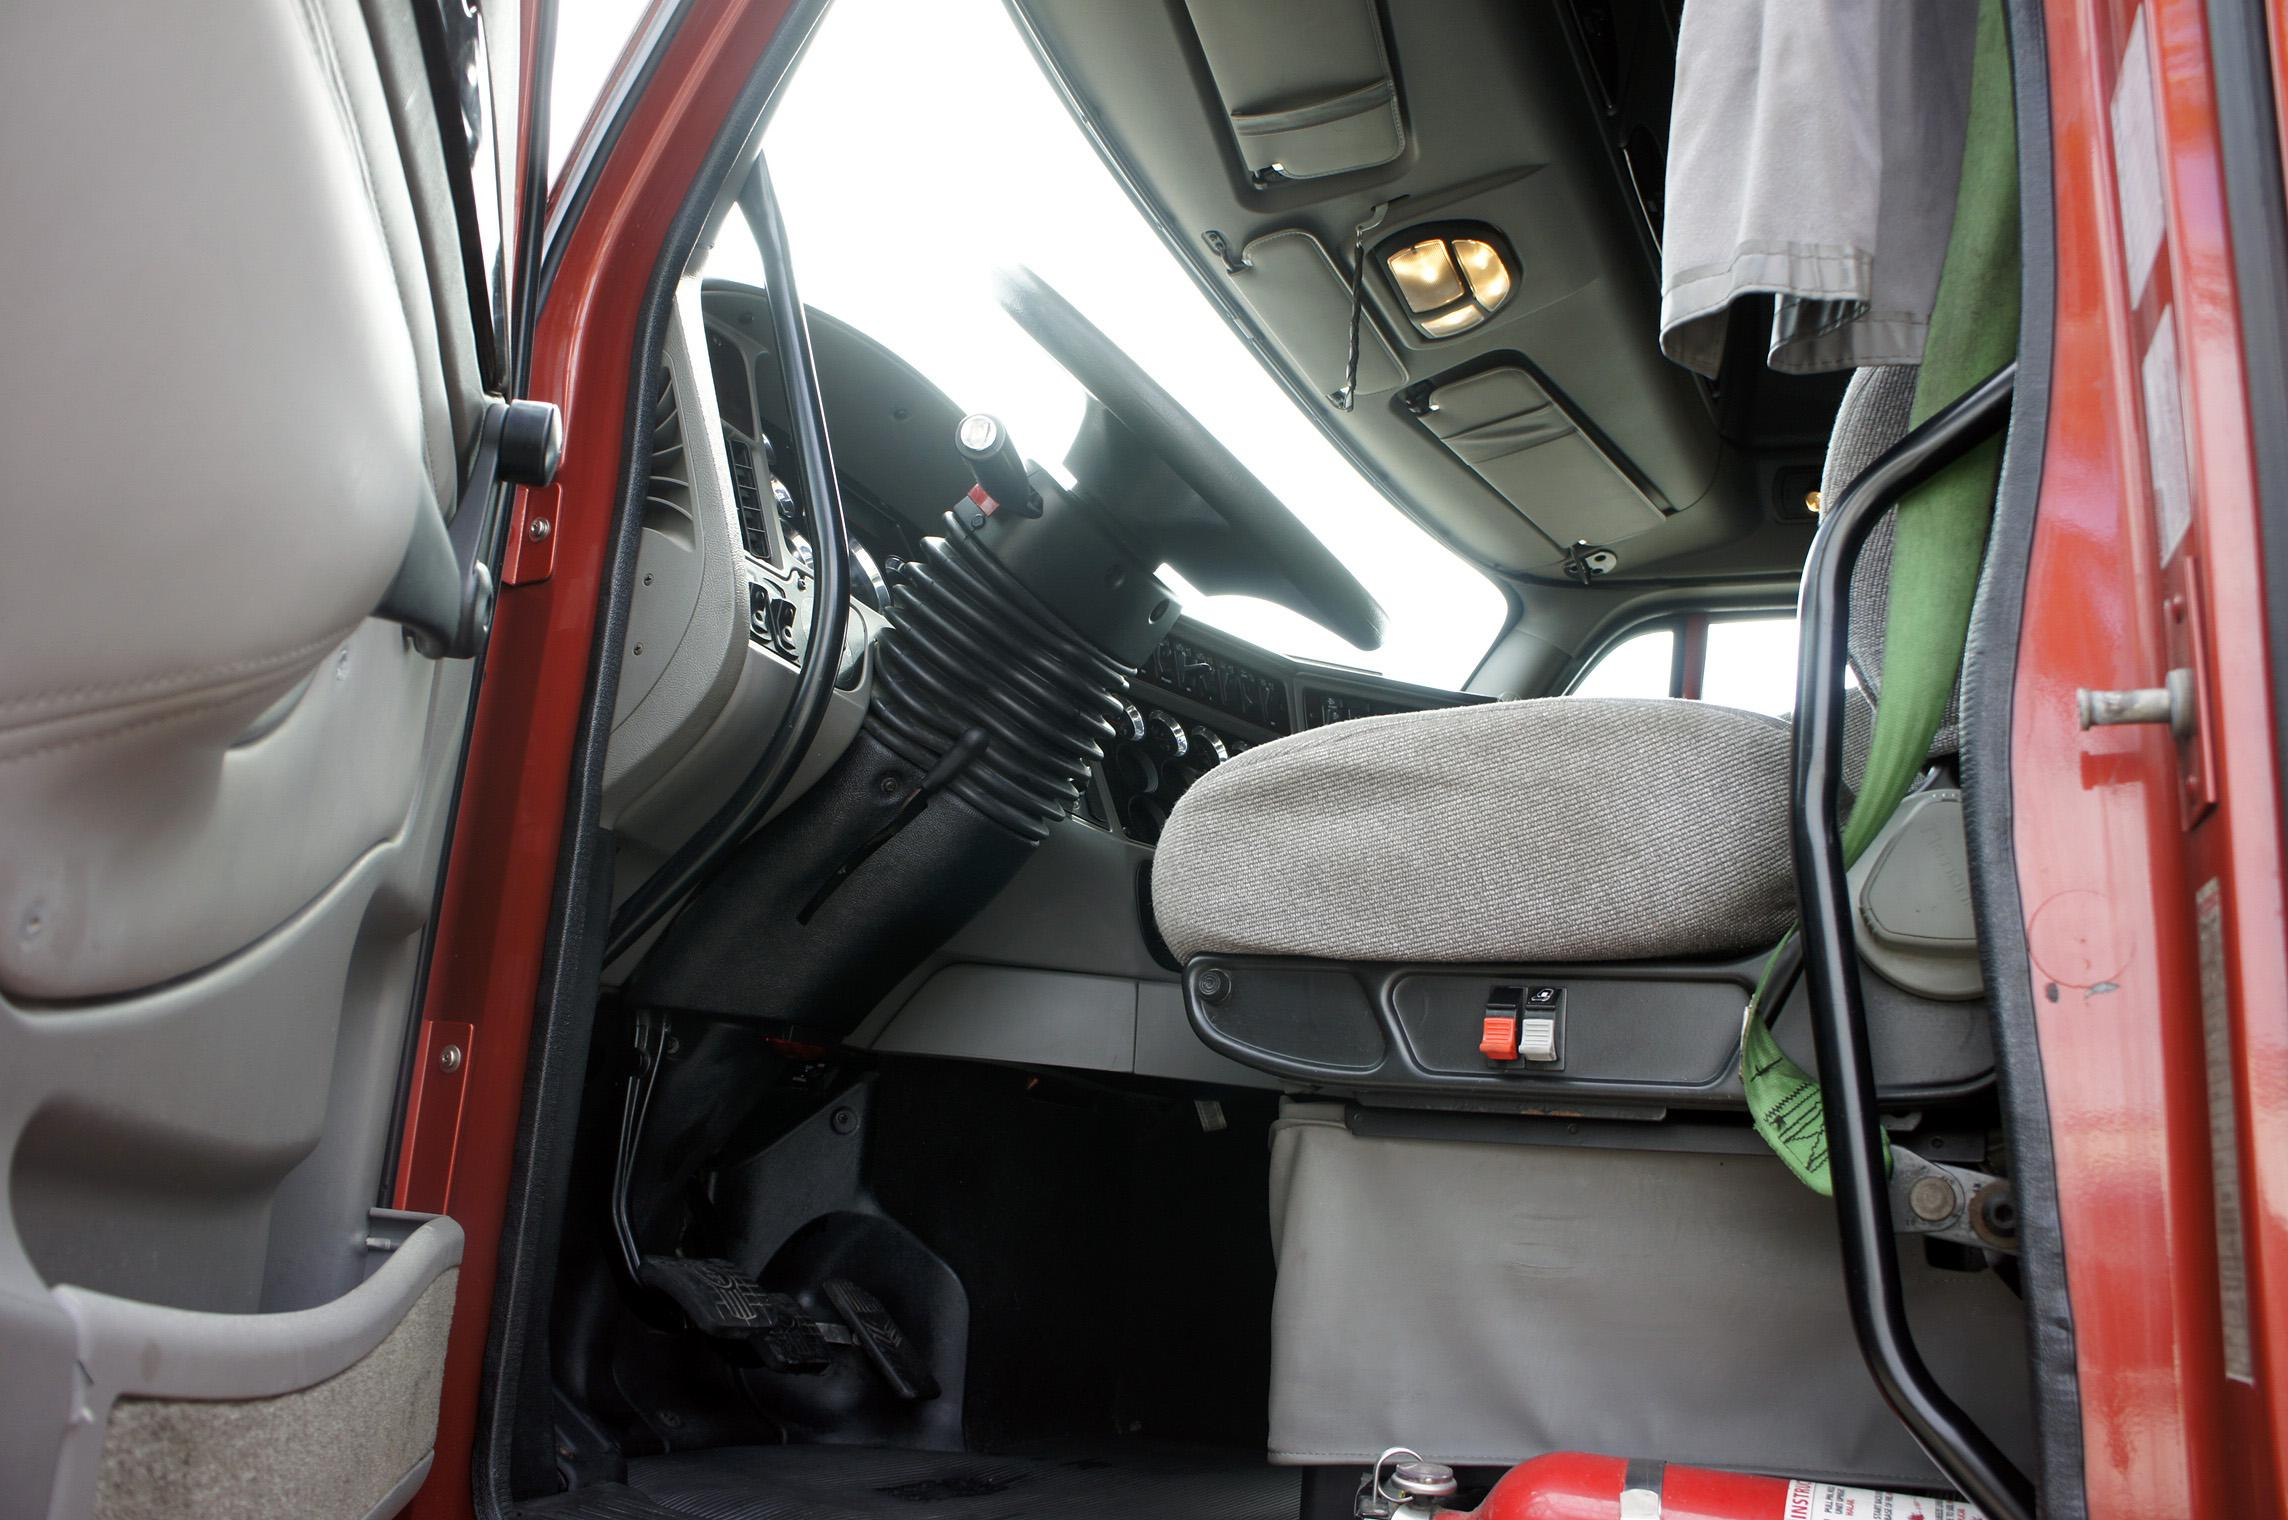 Used 2012 Kenworth T700 for sale-59087141